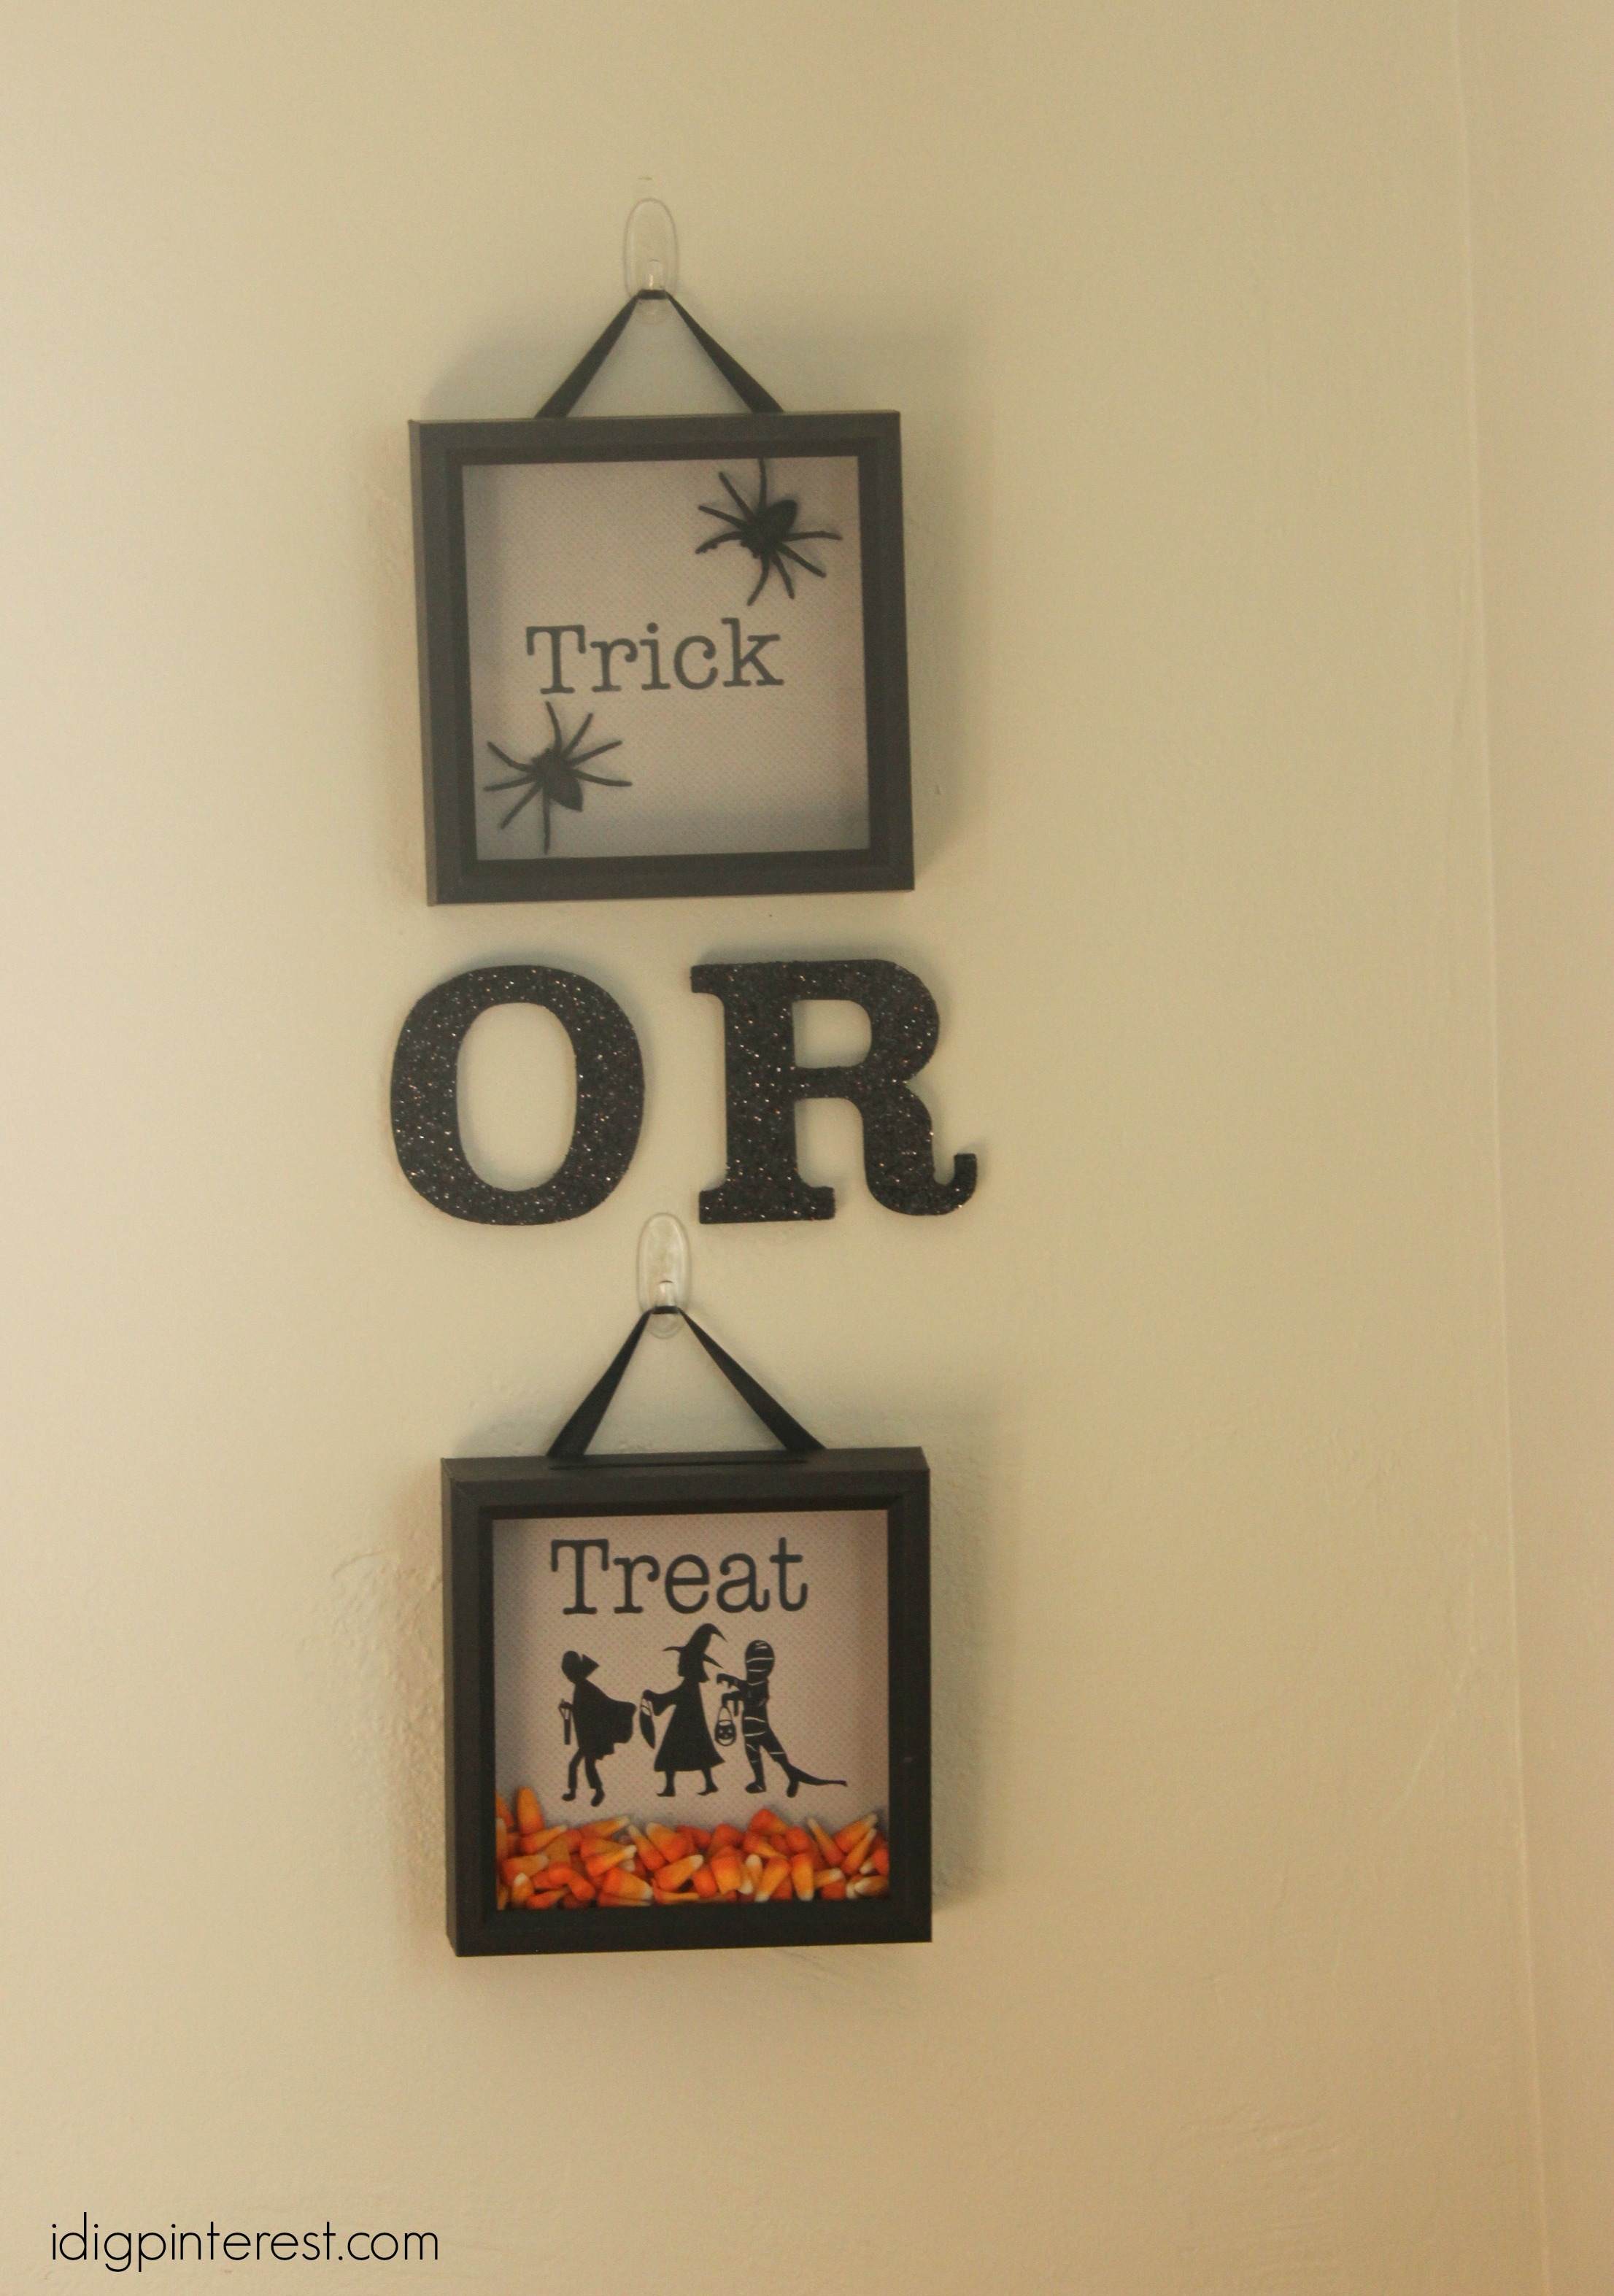 Trick-or-Treat Shadow Box Wall Decor - I Dig Pinterest